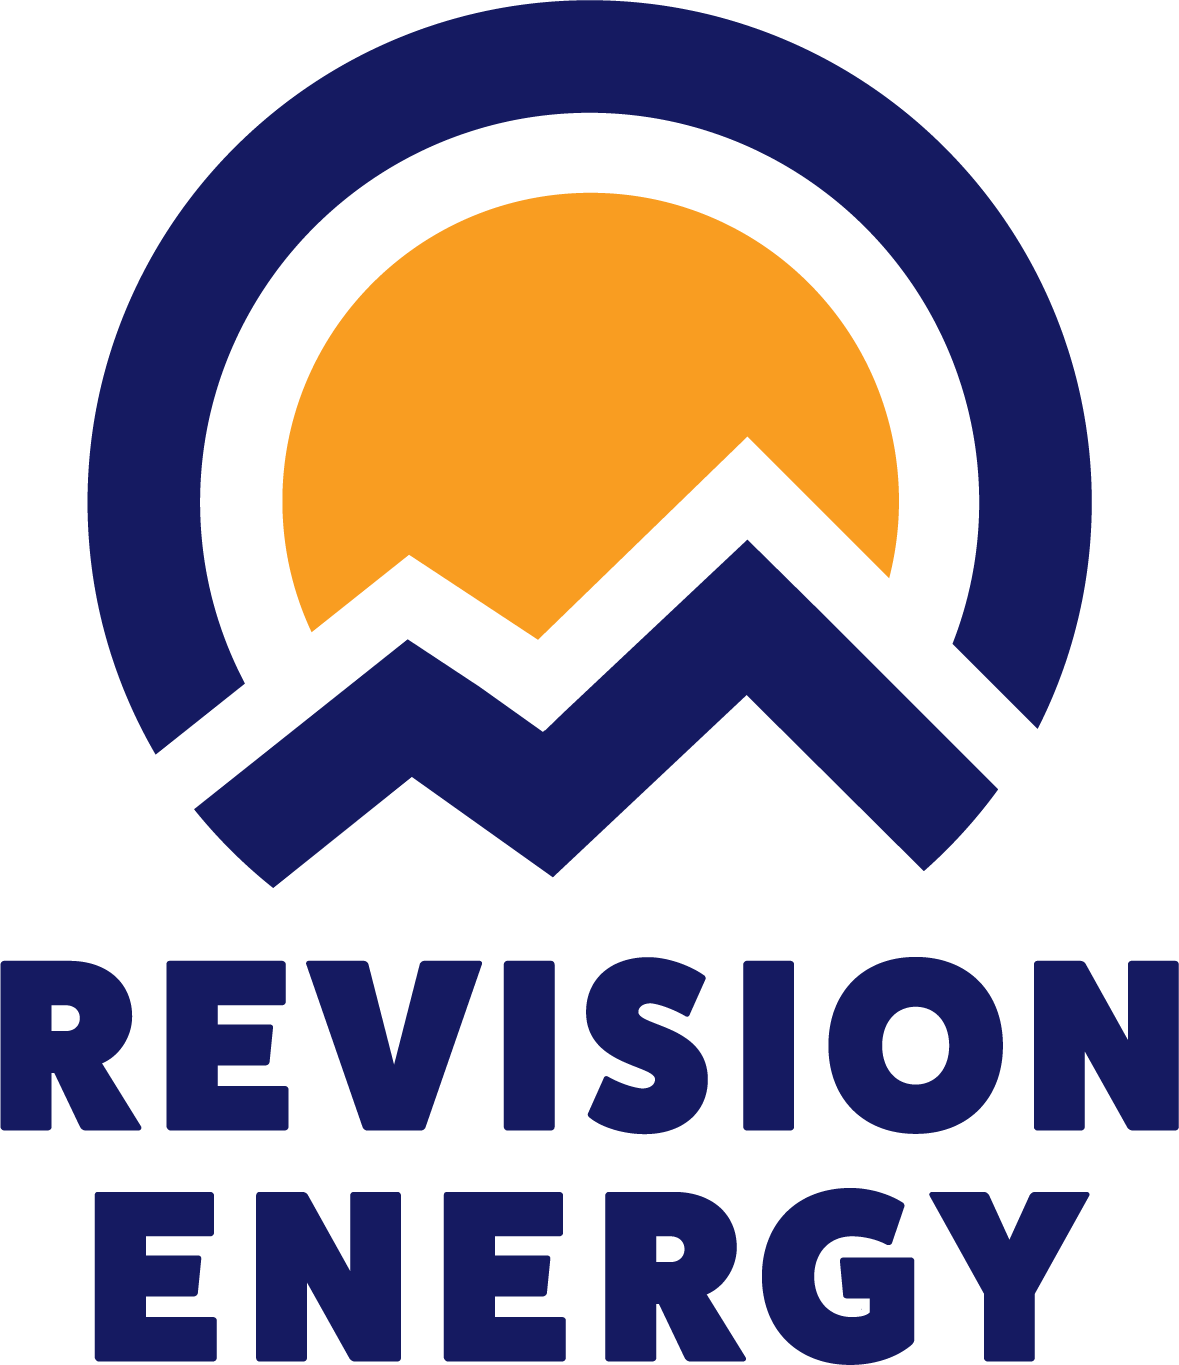 dark-revision-logo (2) - Jill McLaughlin.png